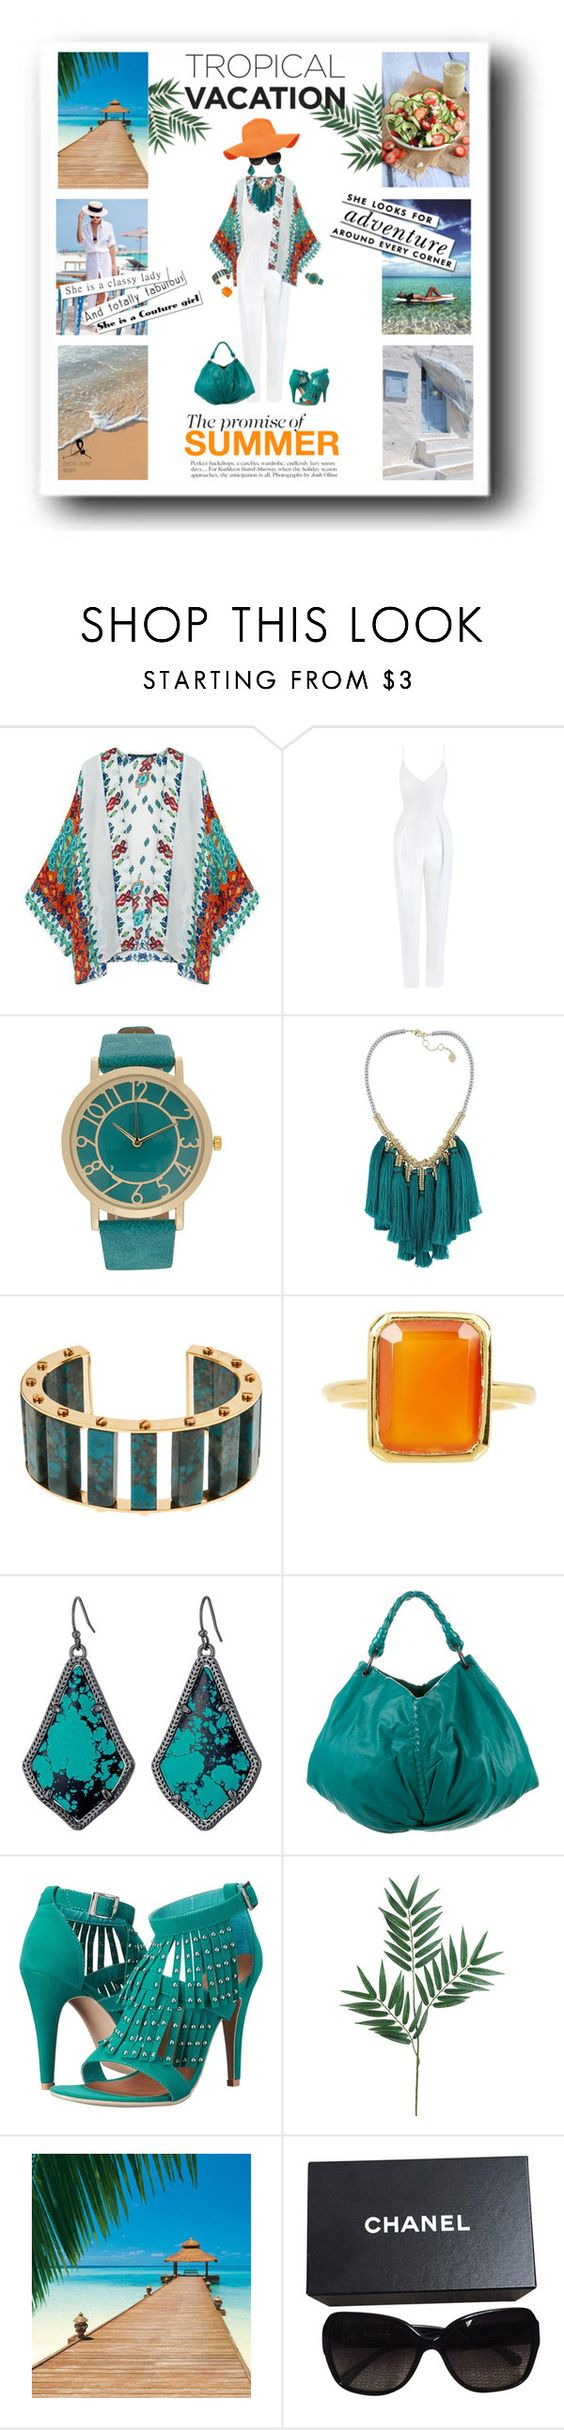 """""""Tropical Dreams"""" by quicherz on Polyvore featuring Zimmermann, French Connection, Lele Sadoughi, Savvy Cie, Kendra Scott, Bottega Veneta, Penny Loves Kenny, Le Specs, Kate Spade and Chanel"""